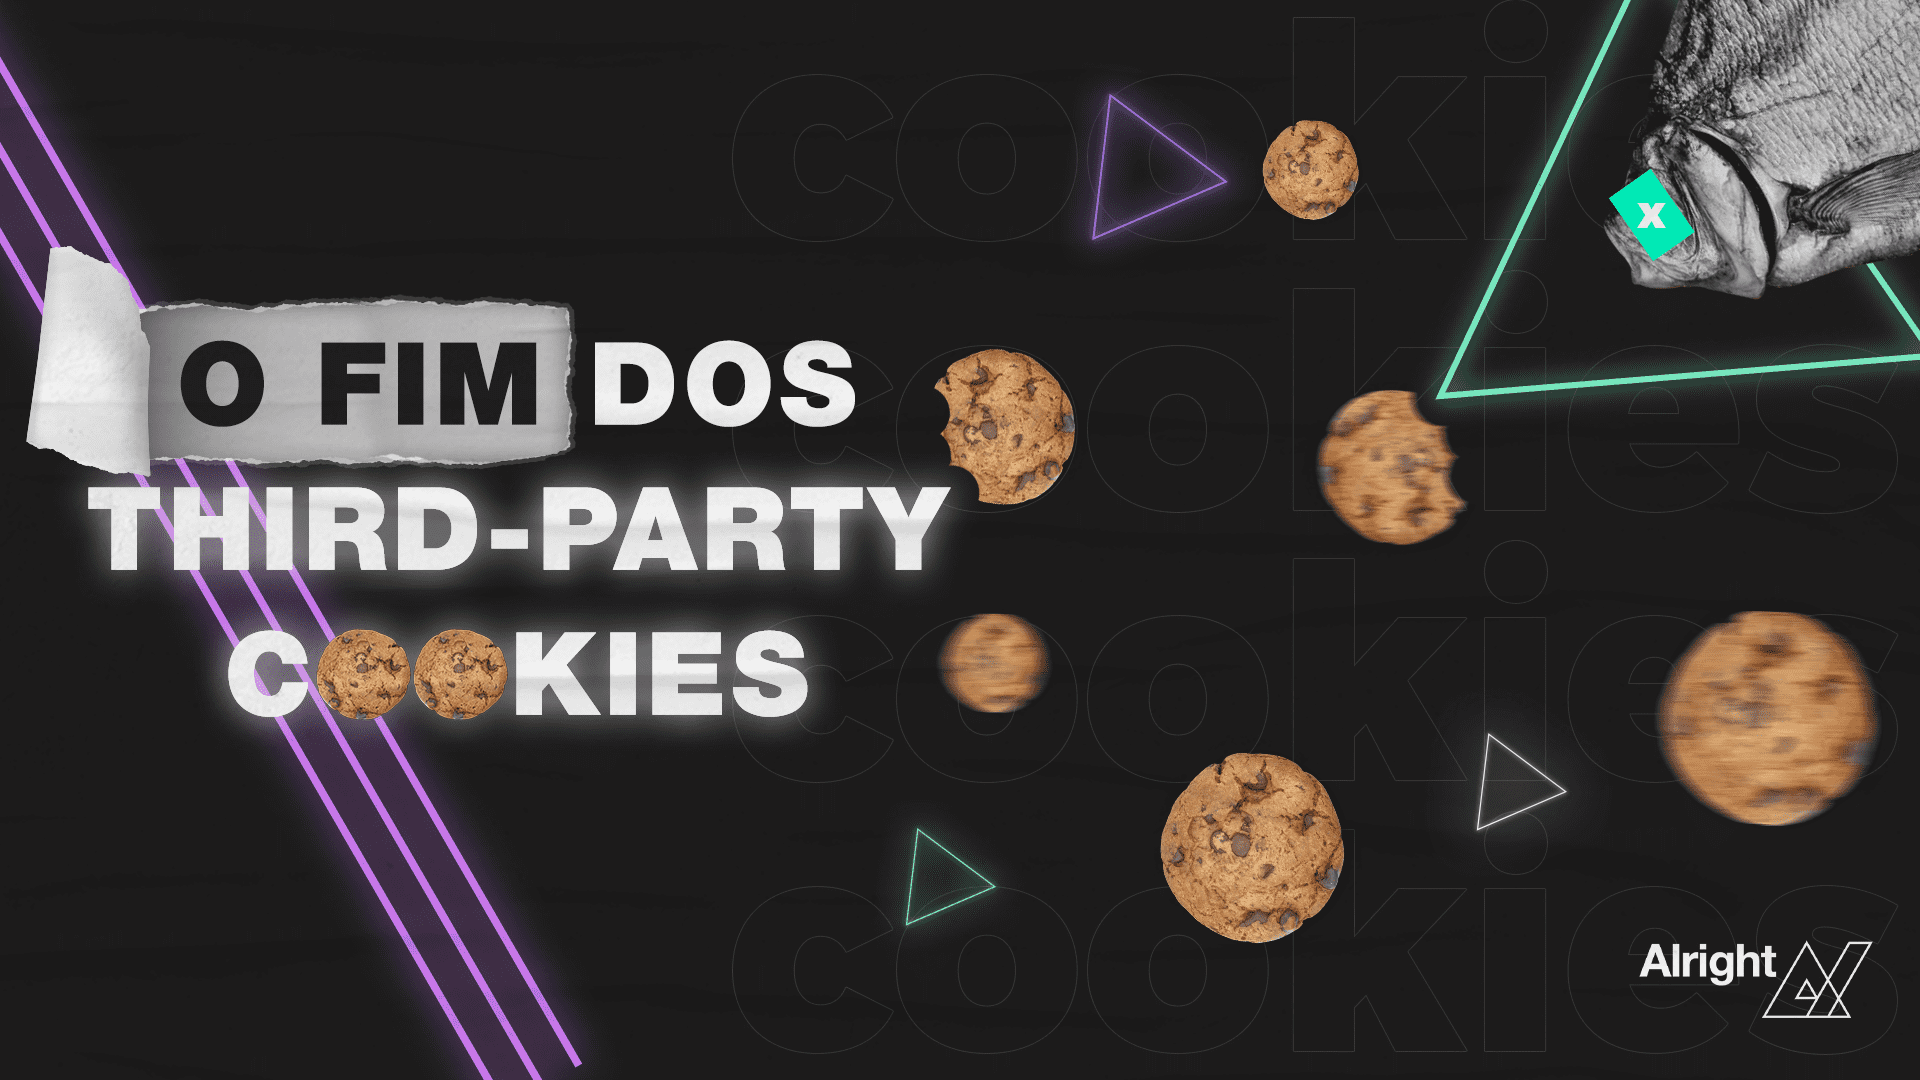 O fim dos cookies third-party